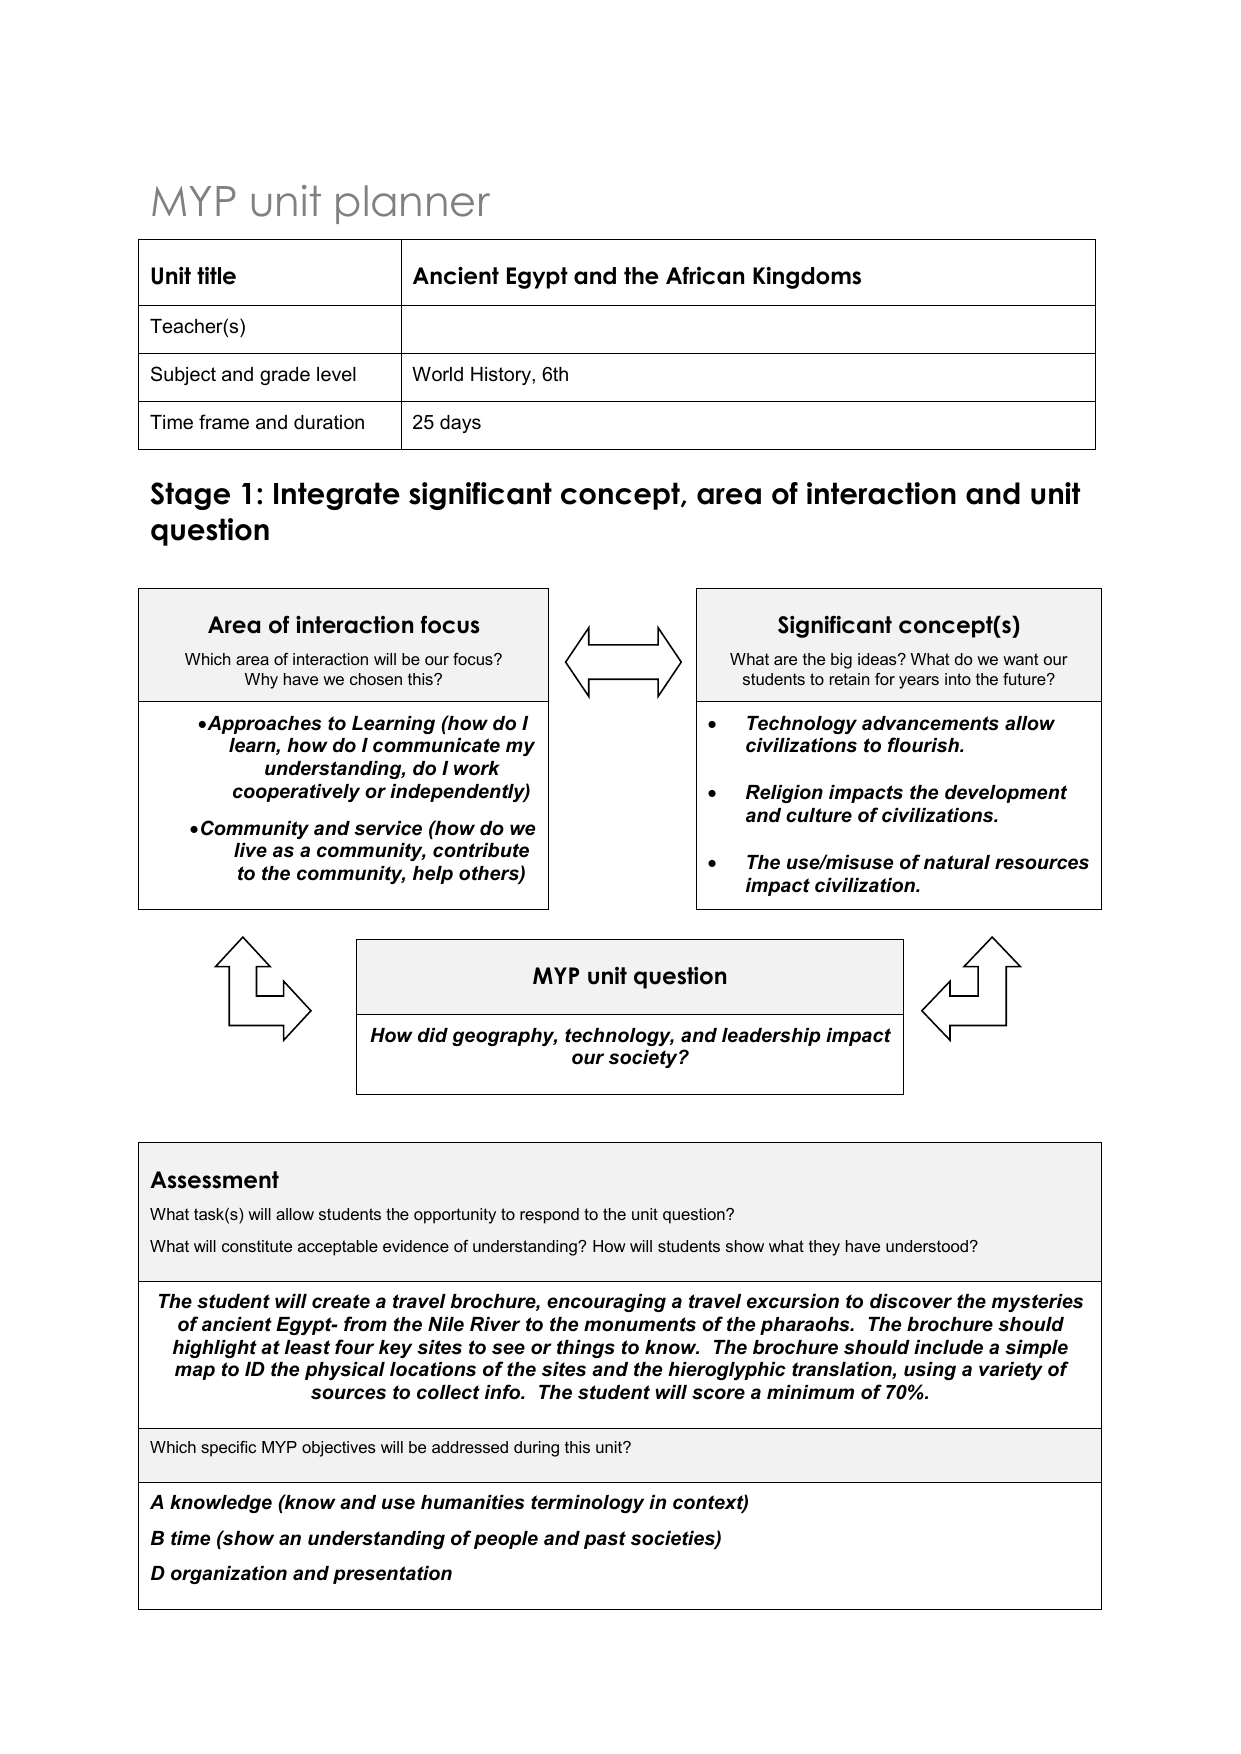 IB UNIT PLAN 6th Egypt and African Kingdoms[1]